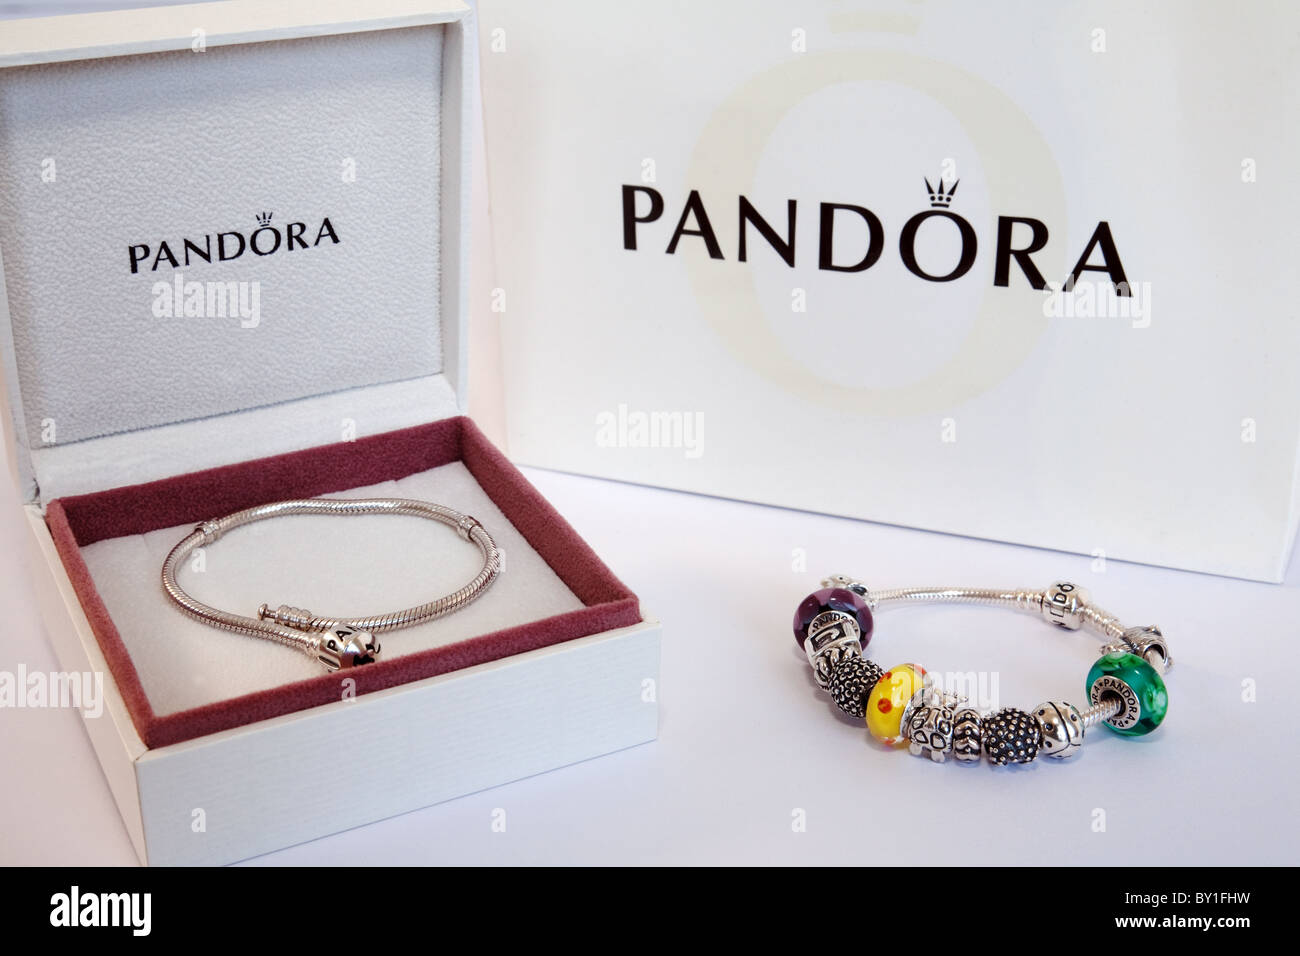 Two Pandora jewelry bracelets and their packaging - Stock Image